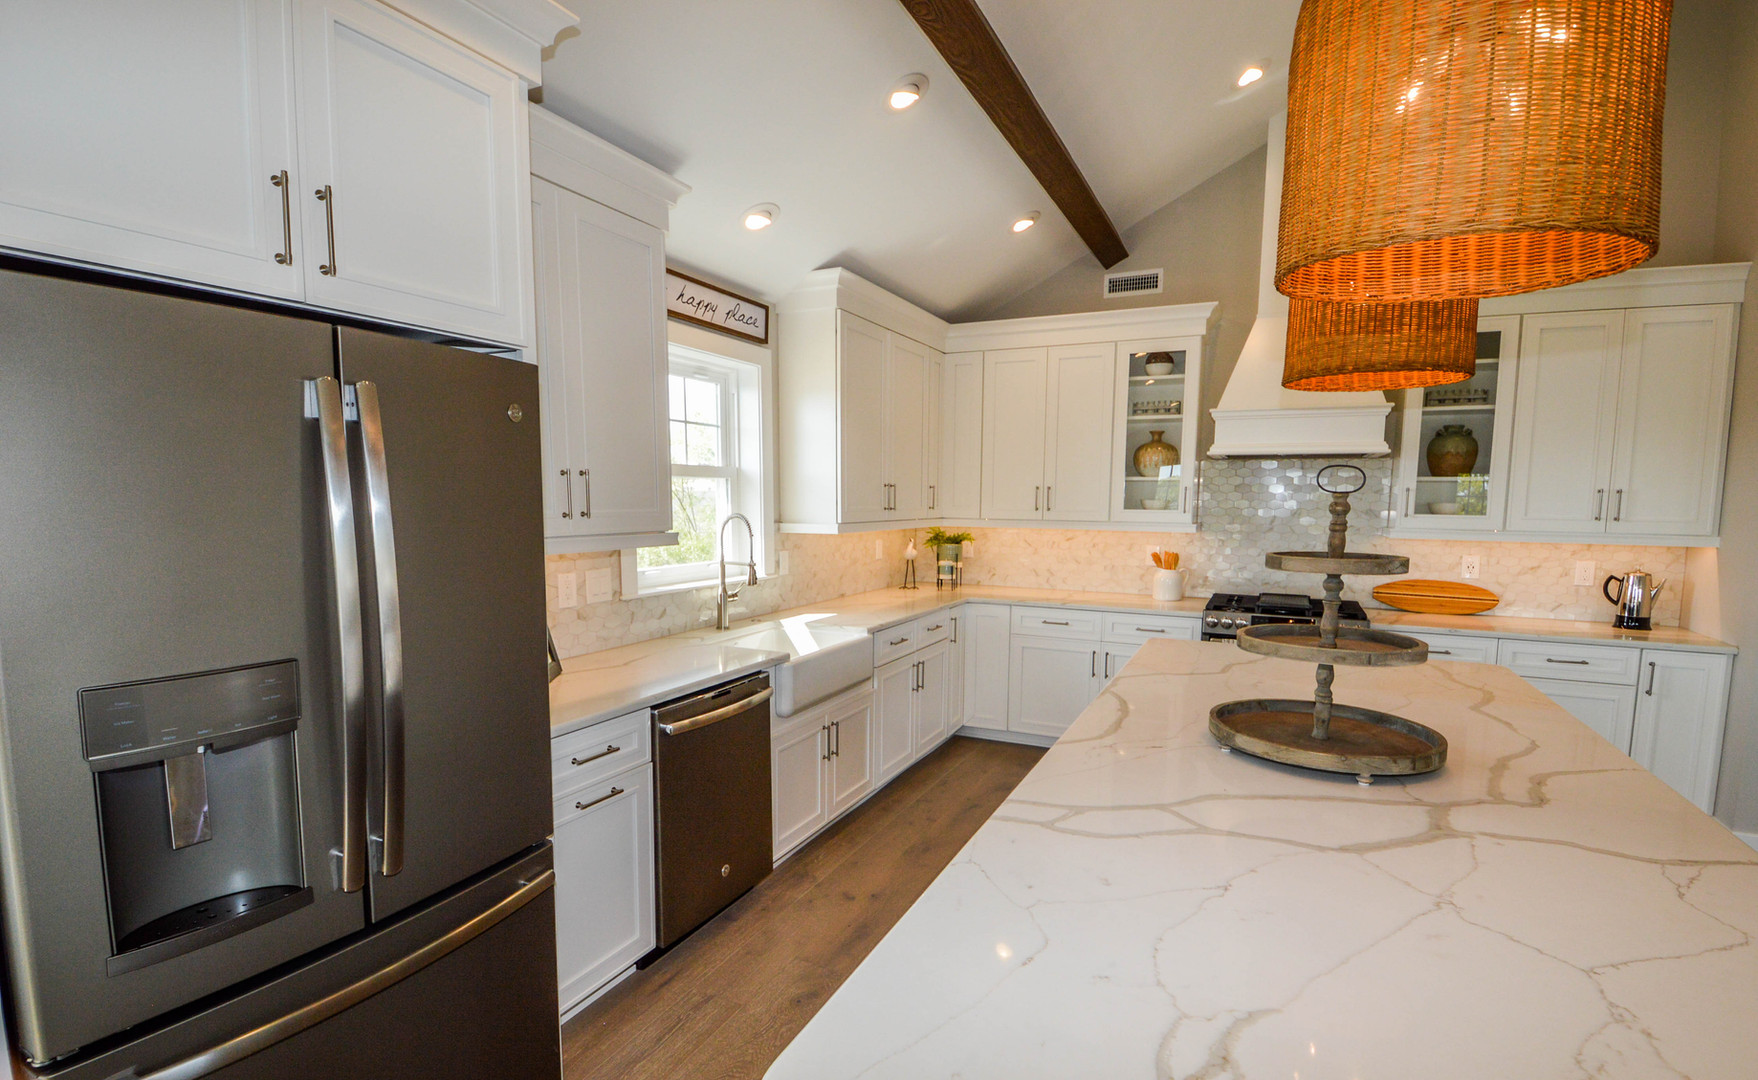 Thinking outside the box: Calcutta gold countertops and marble backsplash infused with basket weaved pendant lighting.  North Wildwood, NJ